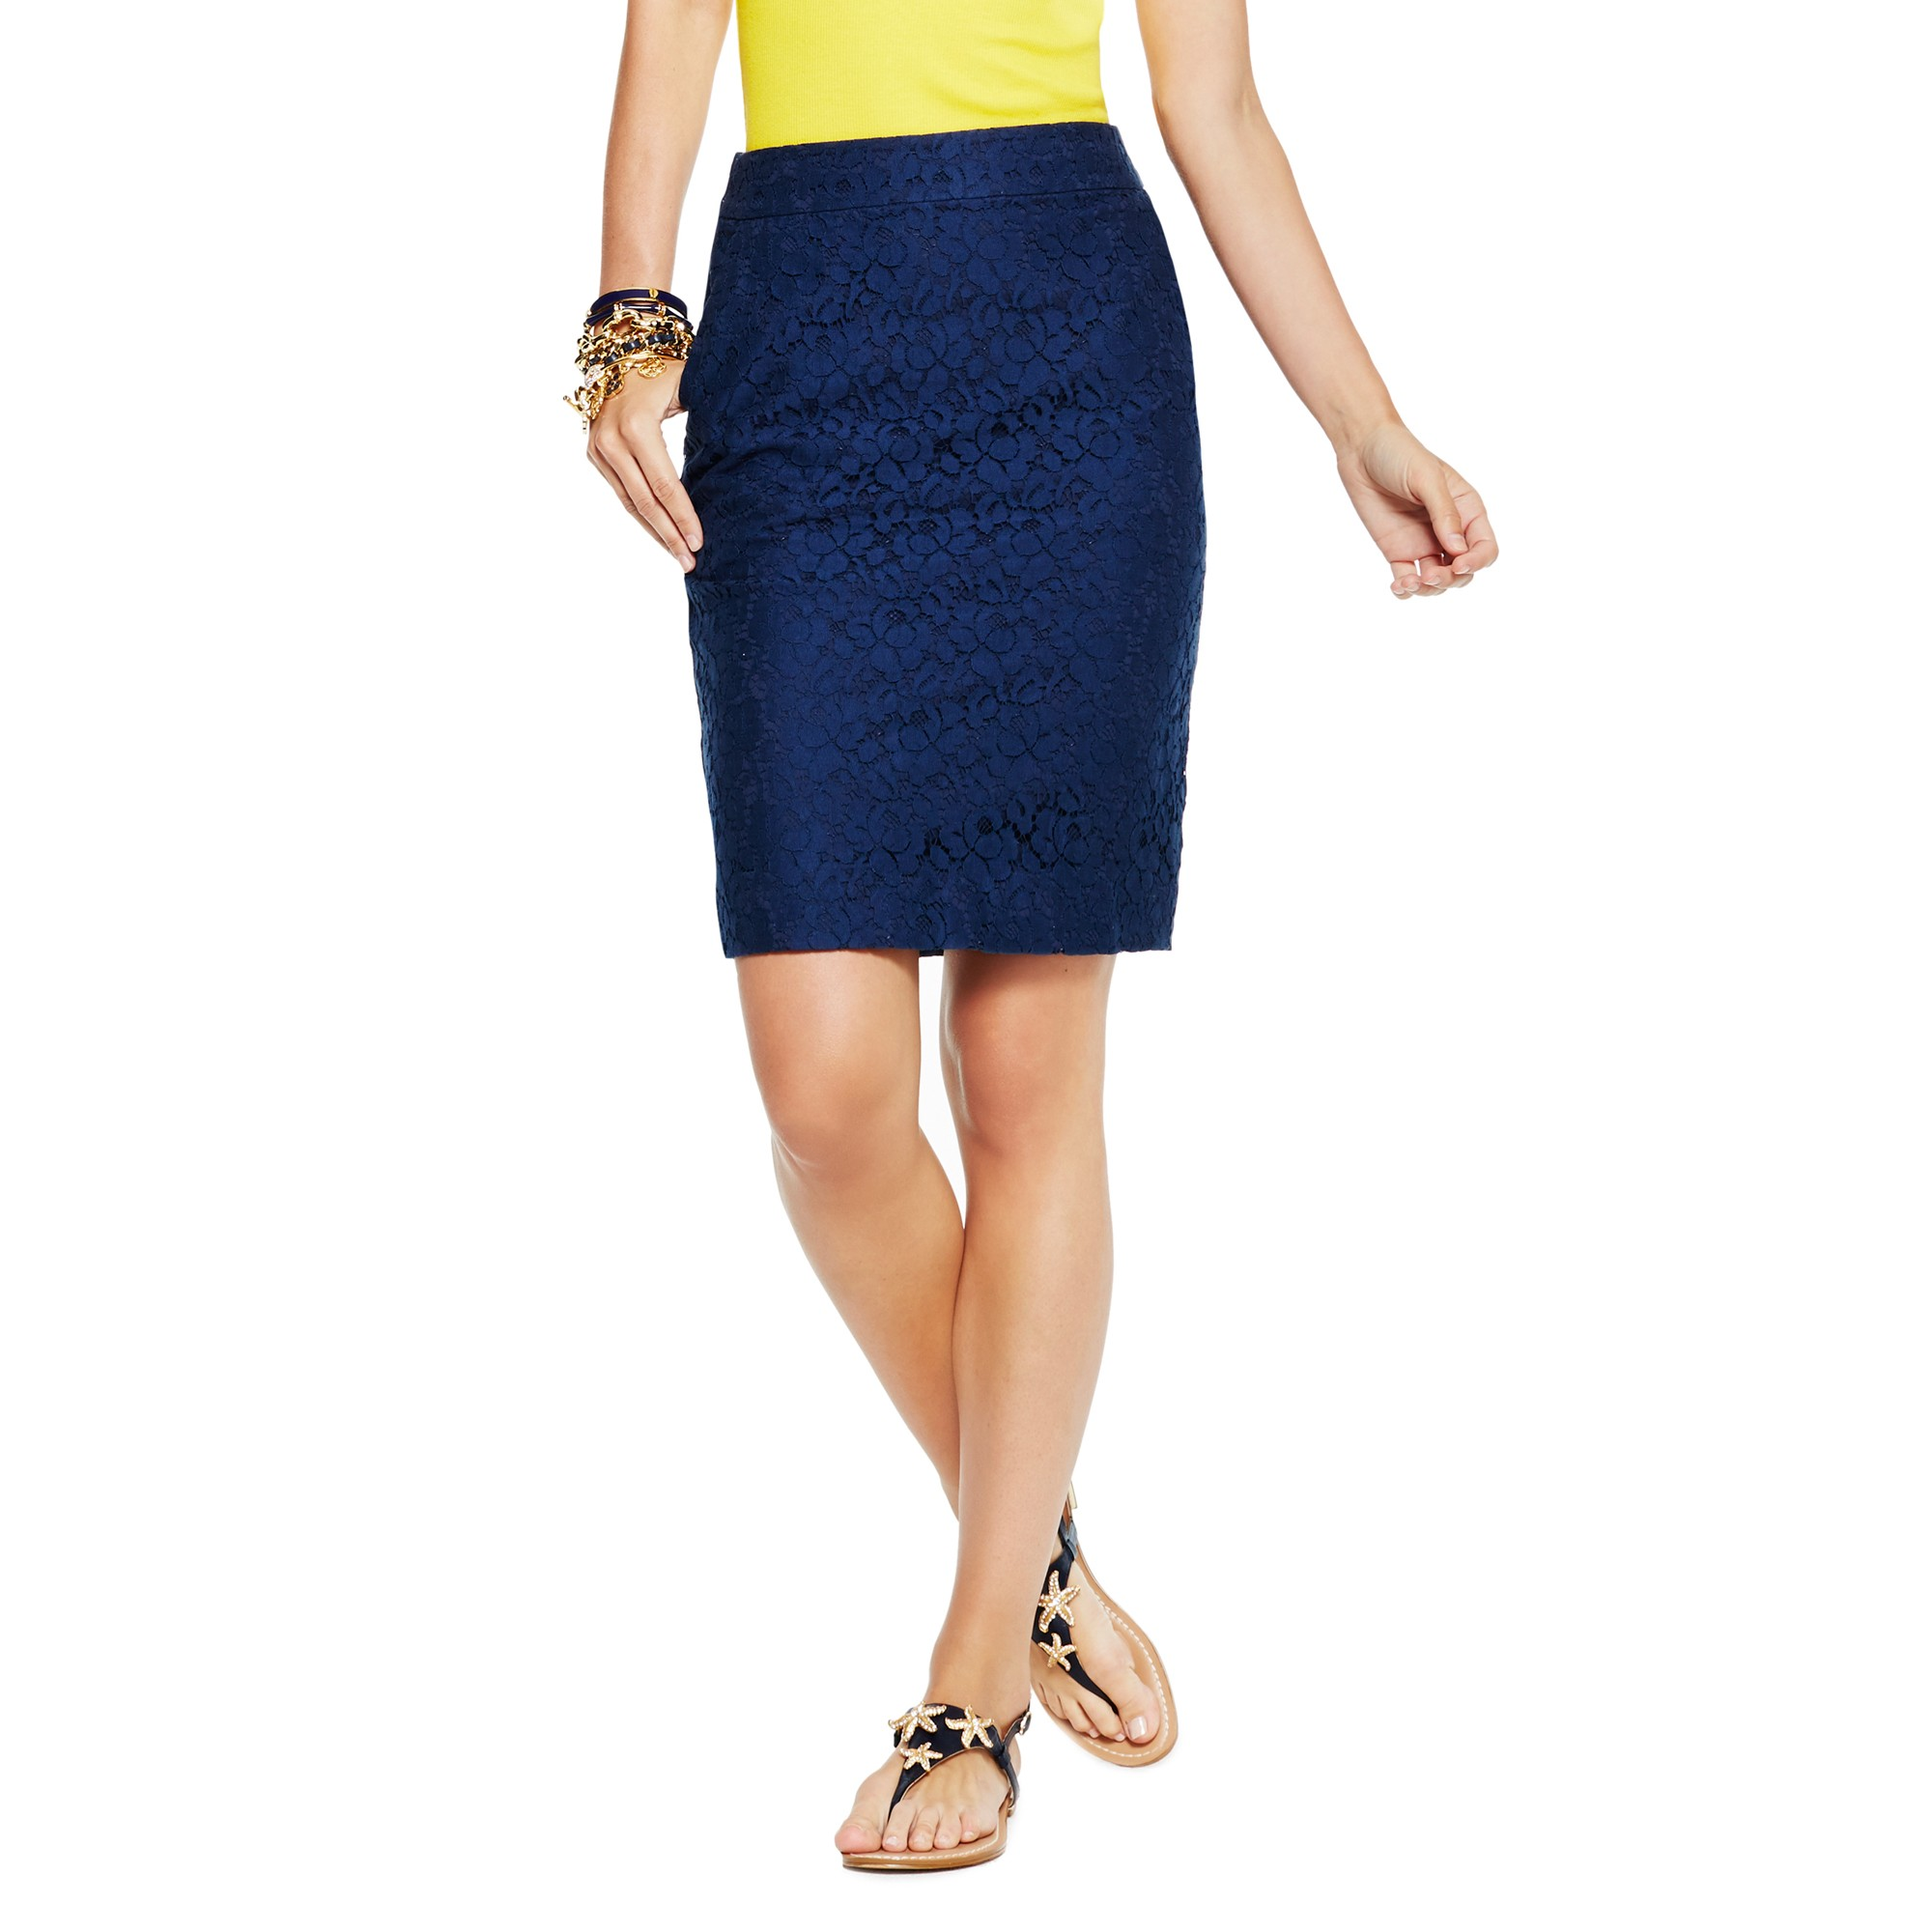 c stretch cotton lace pencil skirt in blue navy